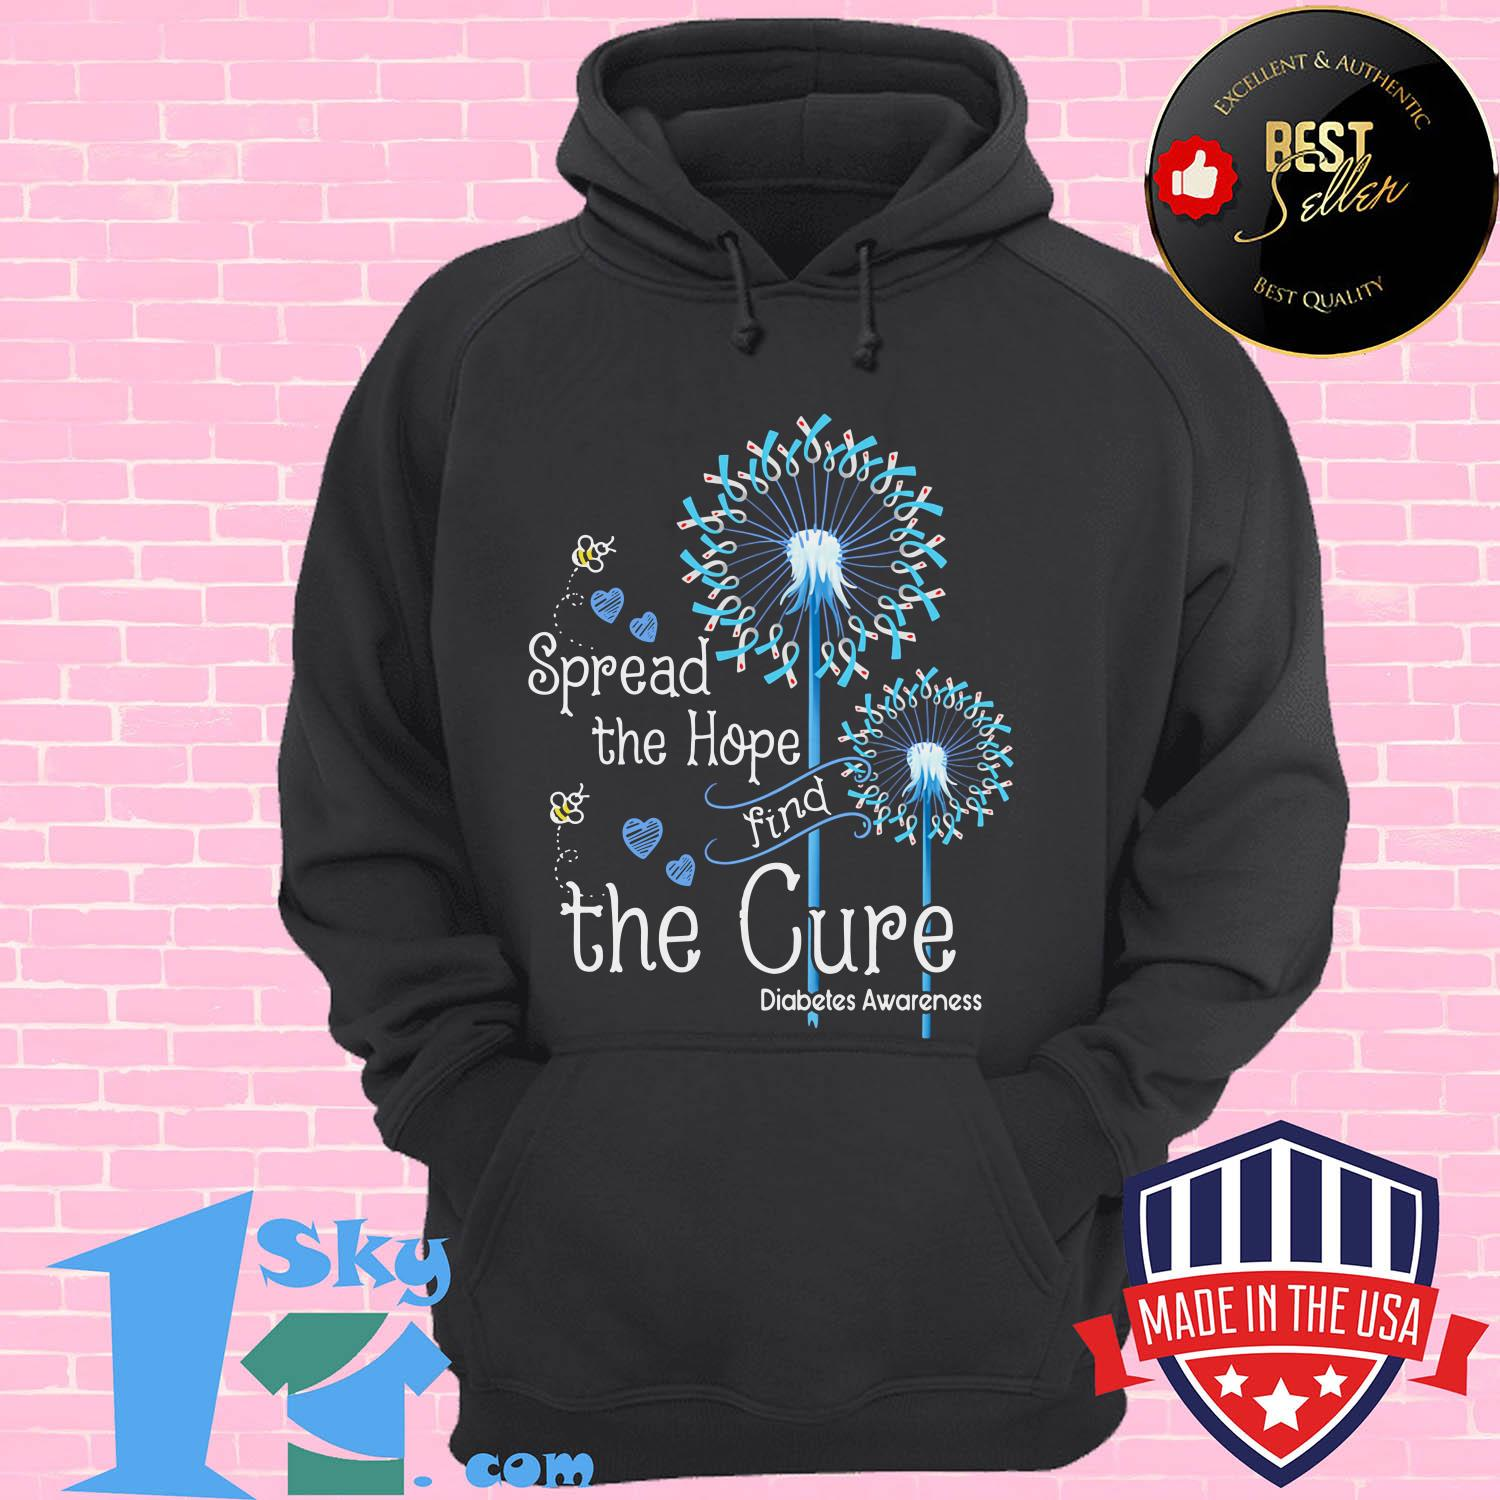 pread the hope find the cure diabetes awareness dandelion hoodie - Spread the hope find the cure diabetes awareness dandelion shirt